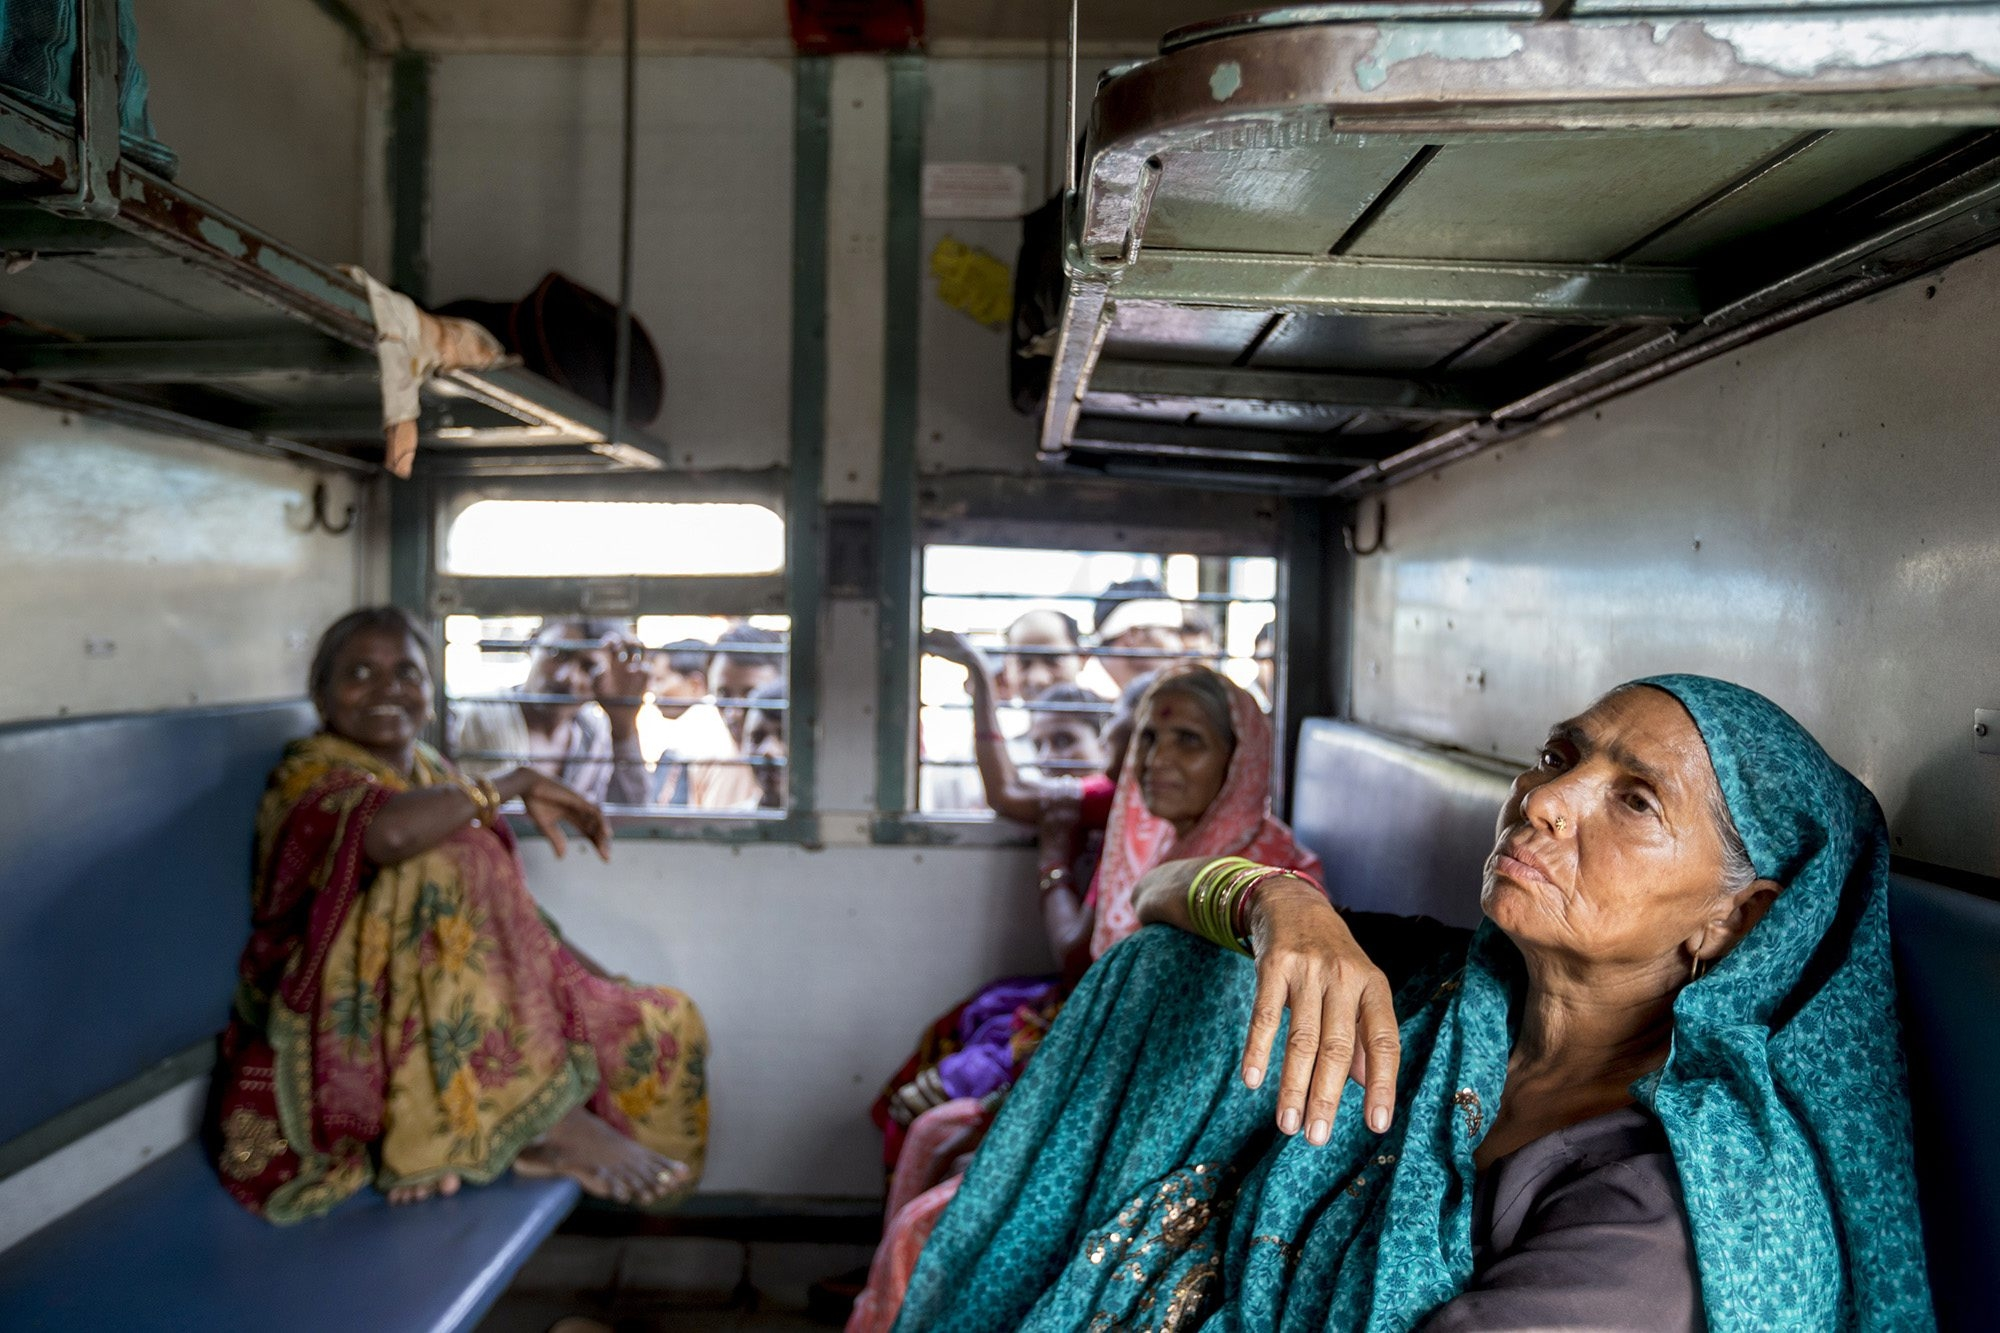 Sondi (no last name given, at right) sits with friends from Maharashtra state in a women-only carriage on a train from New Delhi's Nizamuddin Station destined for Gondwana in Vidarbha region of Maharashtra earlier this month.